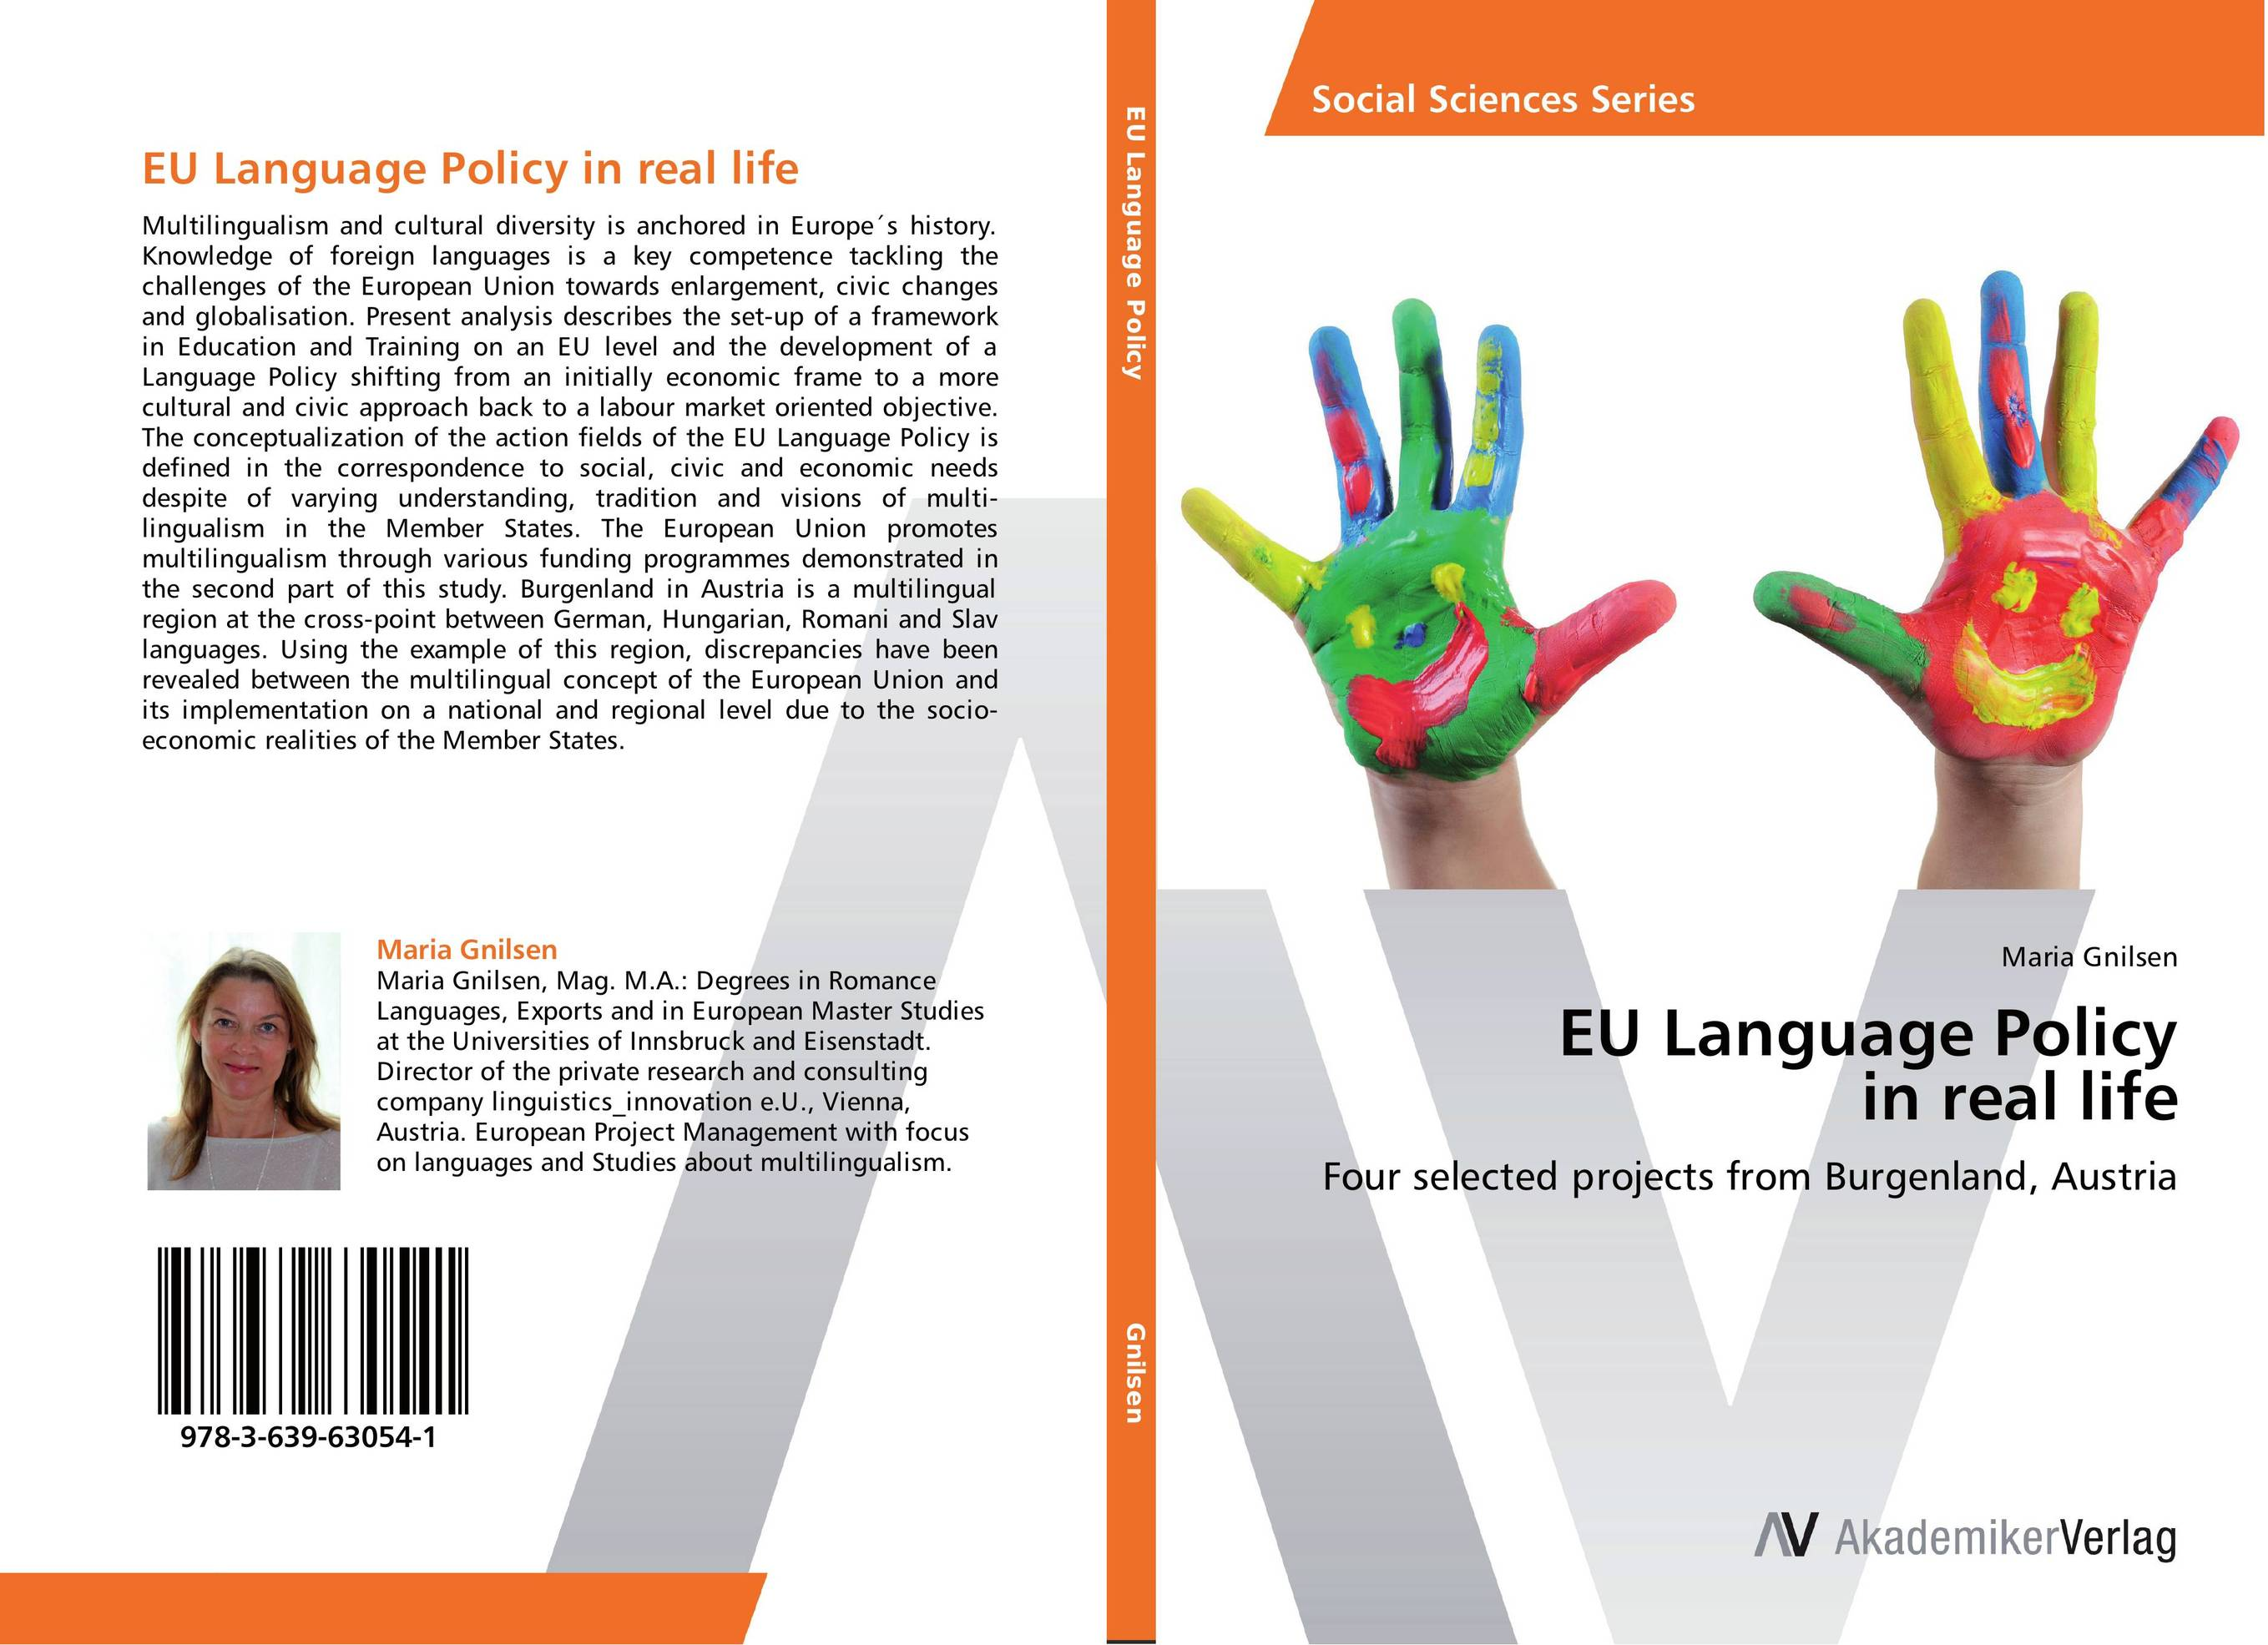 EU Language Policy in real life the internal load analysis in soccer